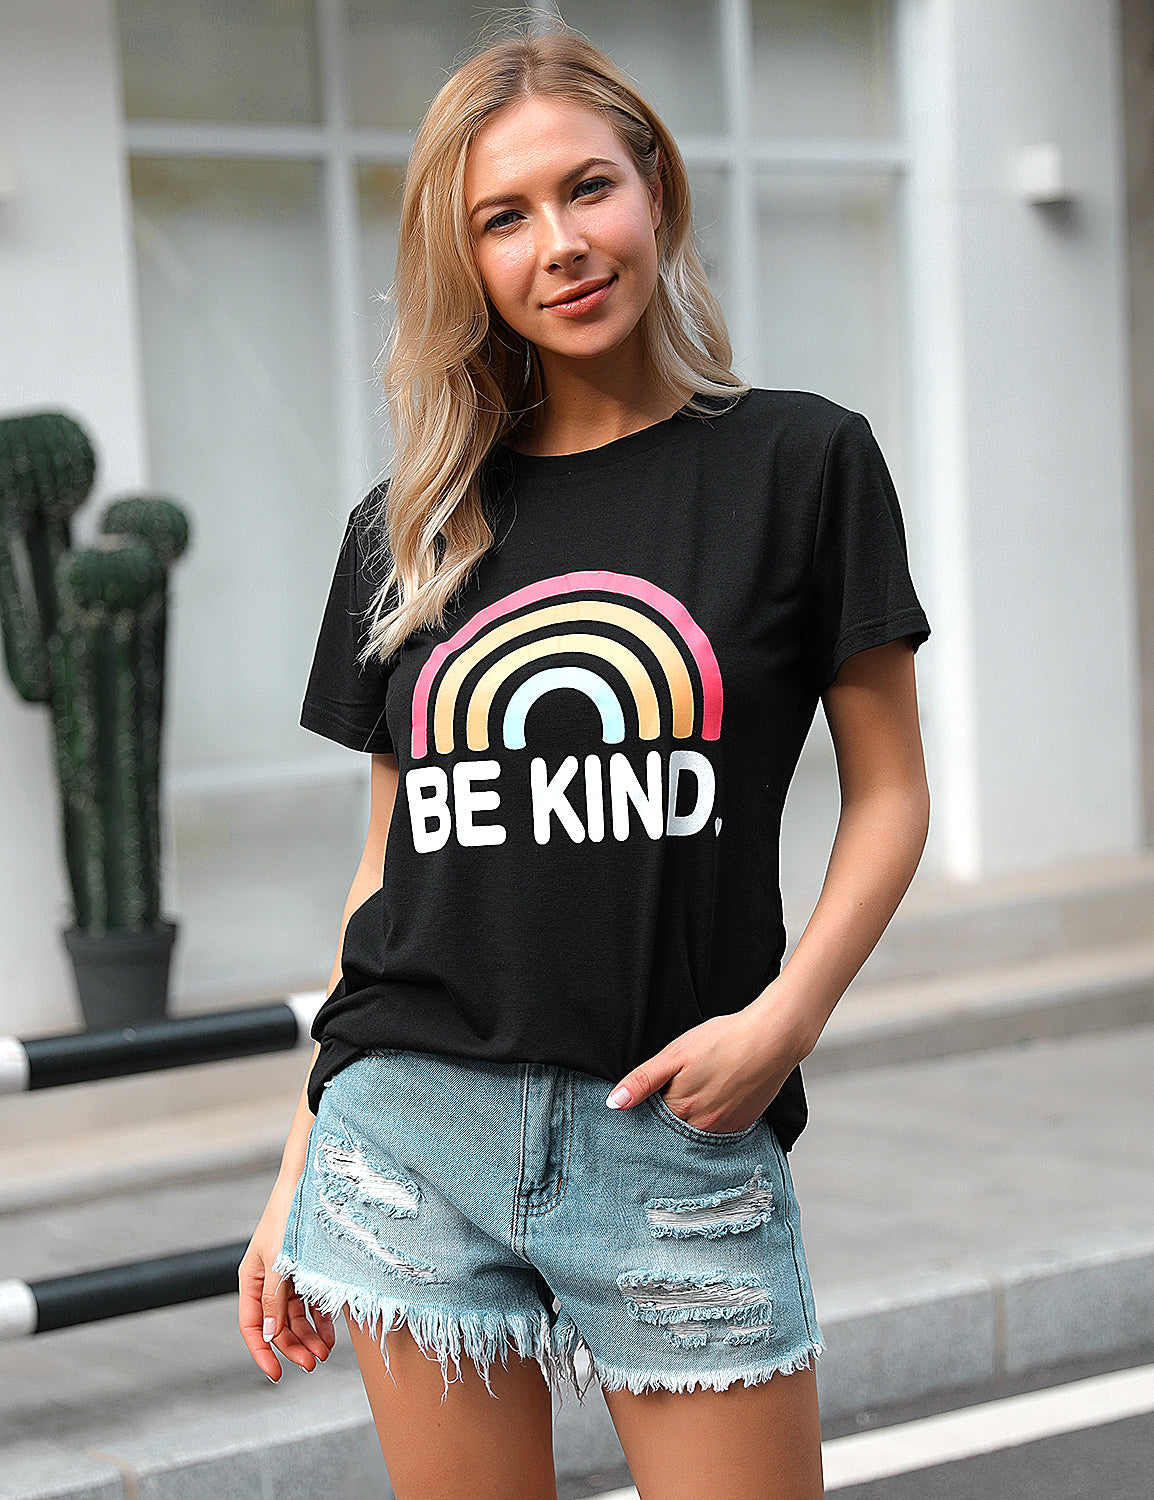 Blooming Jelly_Be Kind Colorful Rainbow Print Soft T-Shirt_Letter Print_153336_02_Trendy Women Streetwear Cool_Tops_T-Shirt